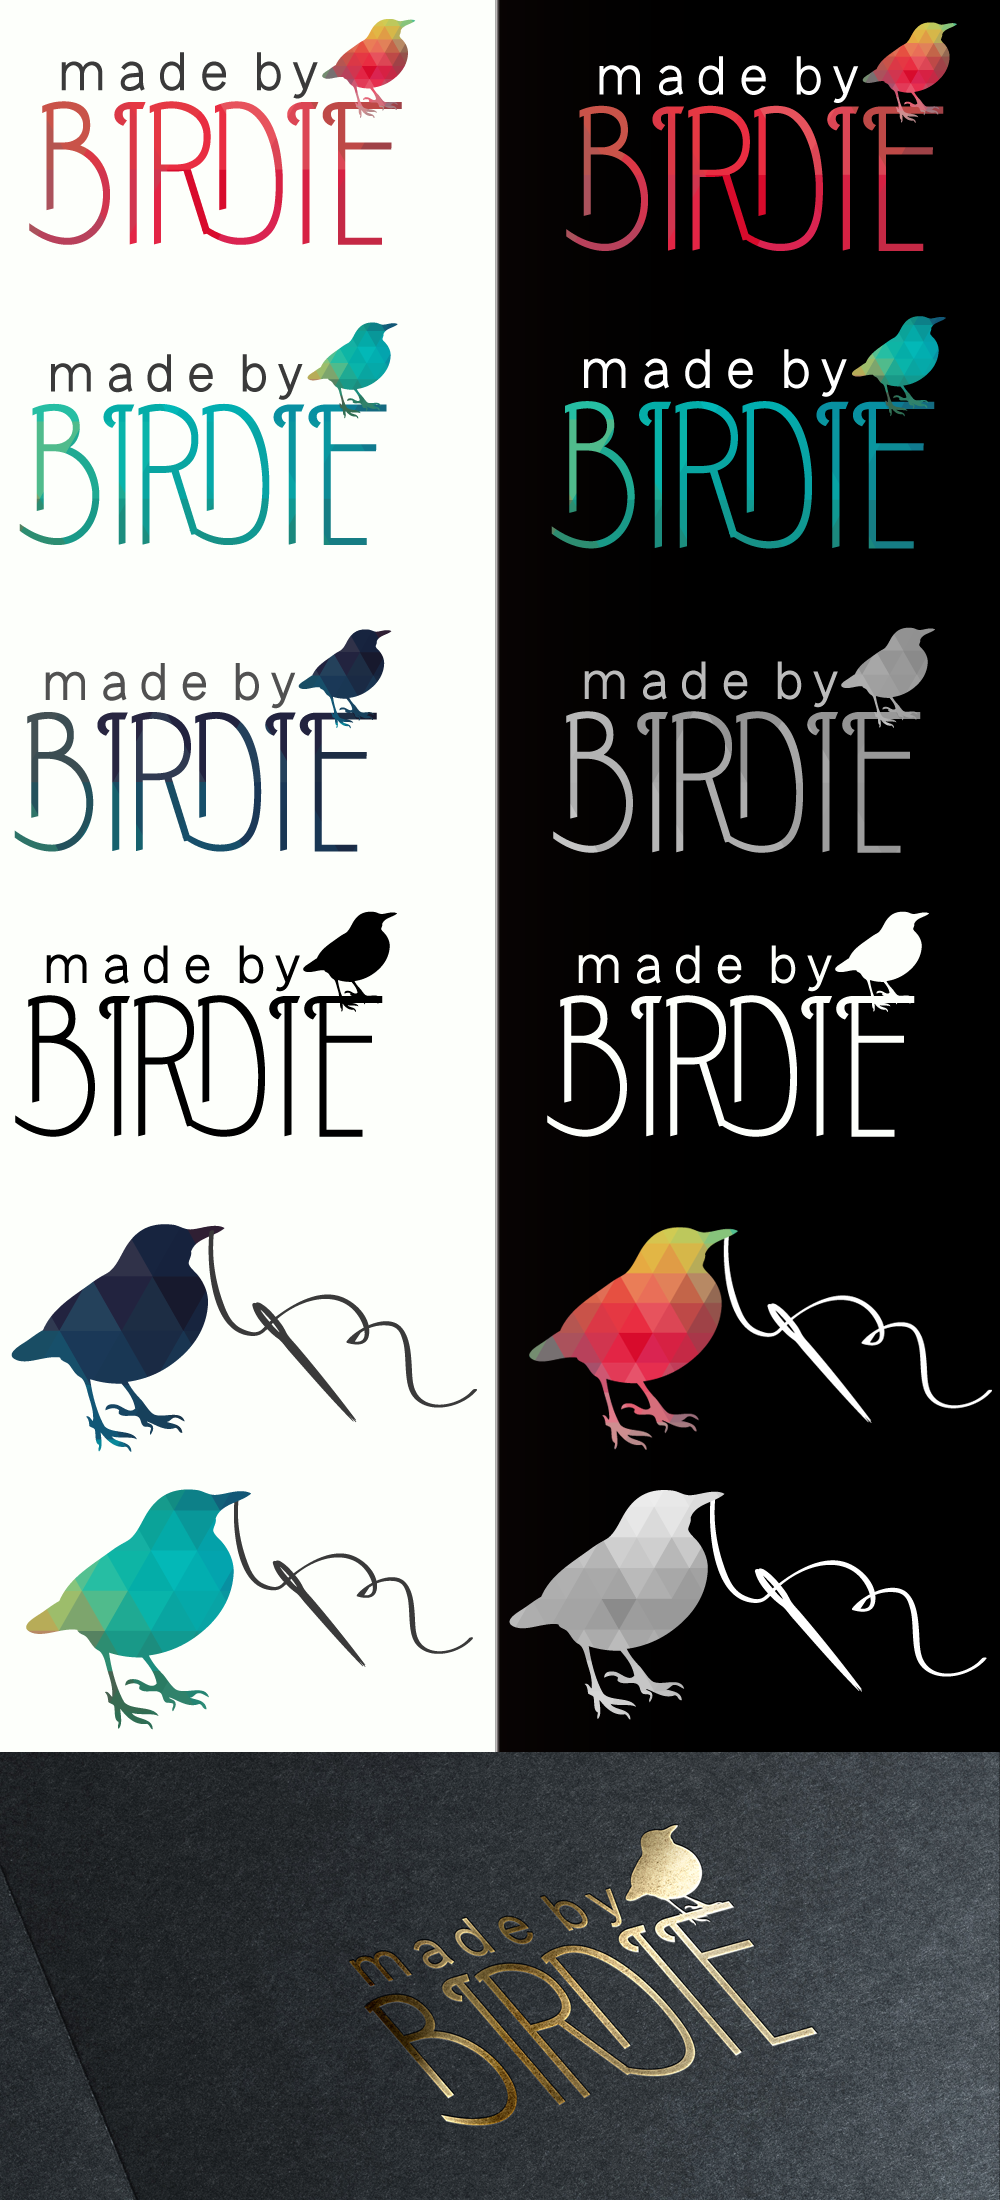 Design a logo for a fun and colourful handmade product brand called Made By Birdie